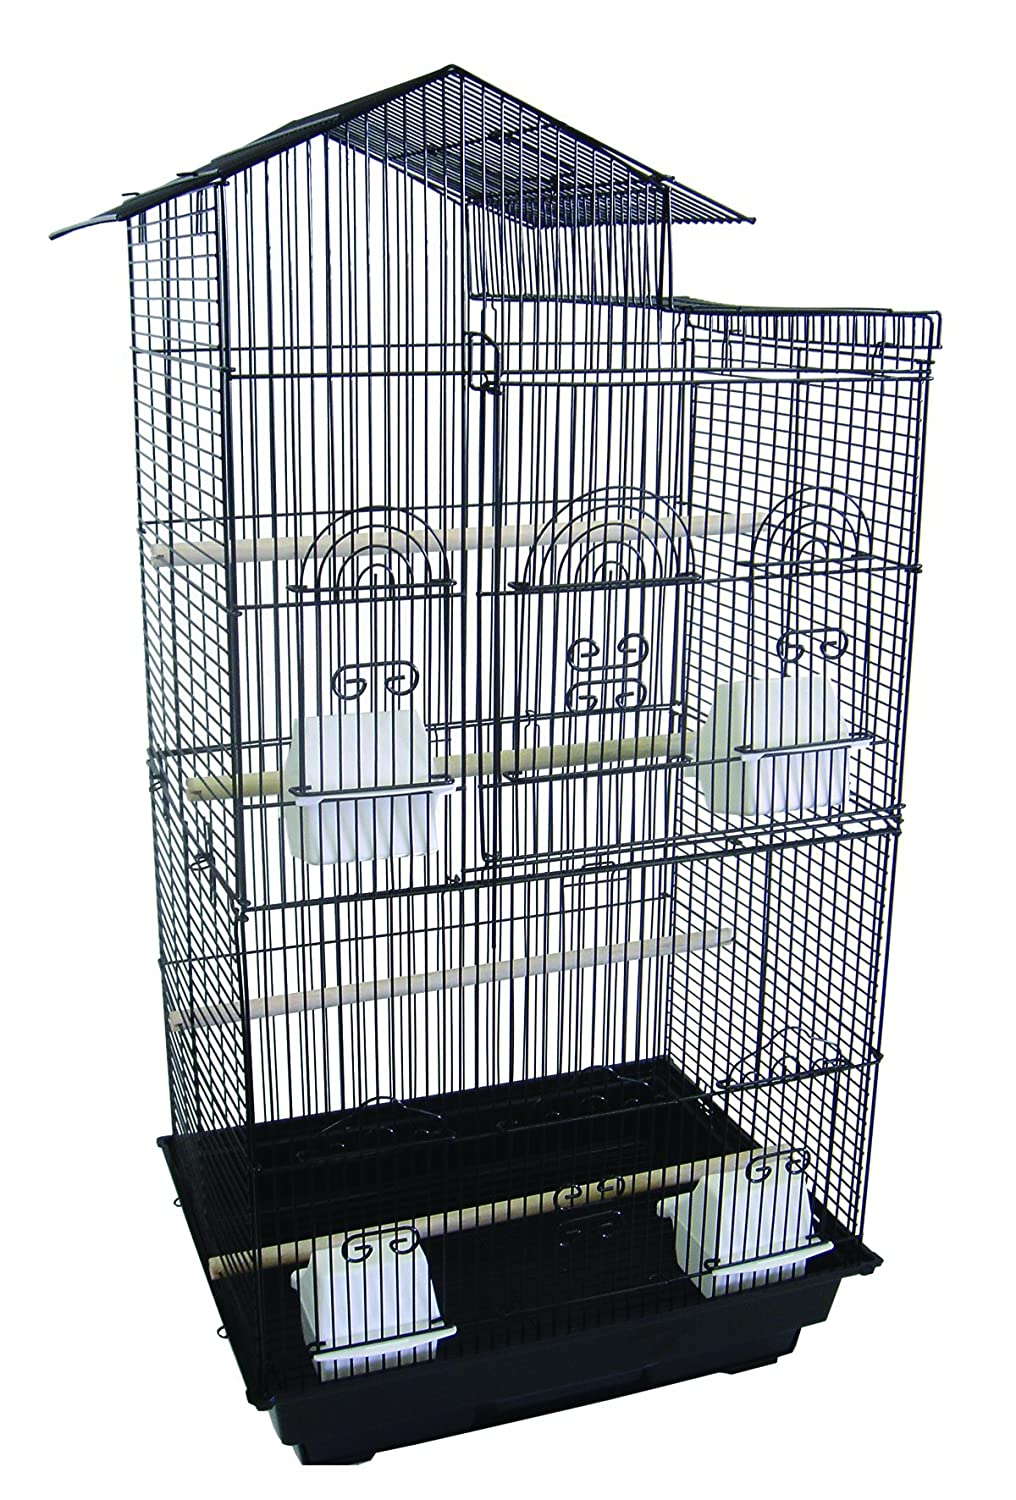 YML A6894 3/8-Inch Bar Spacing Tall Villa Top Small Bird Cage, 18-Inch by 14-Inch, White A6894WHT